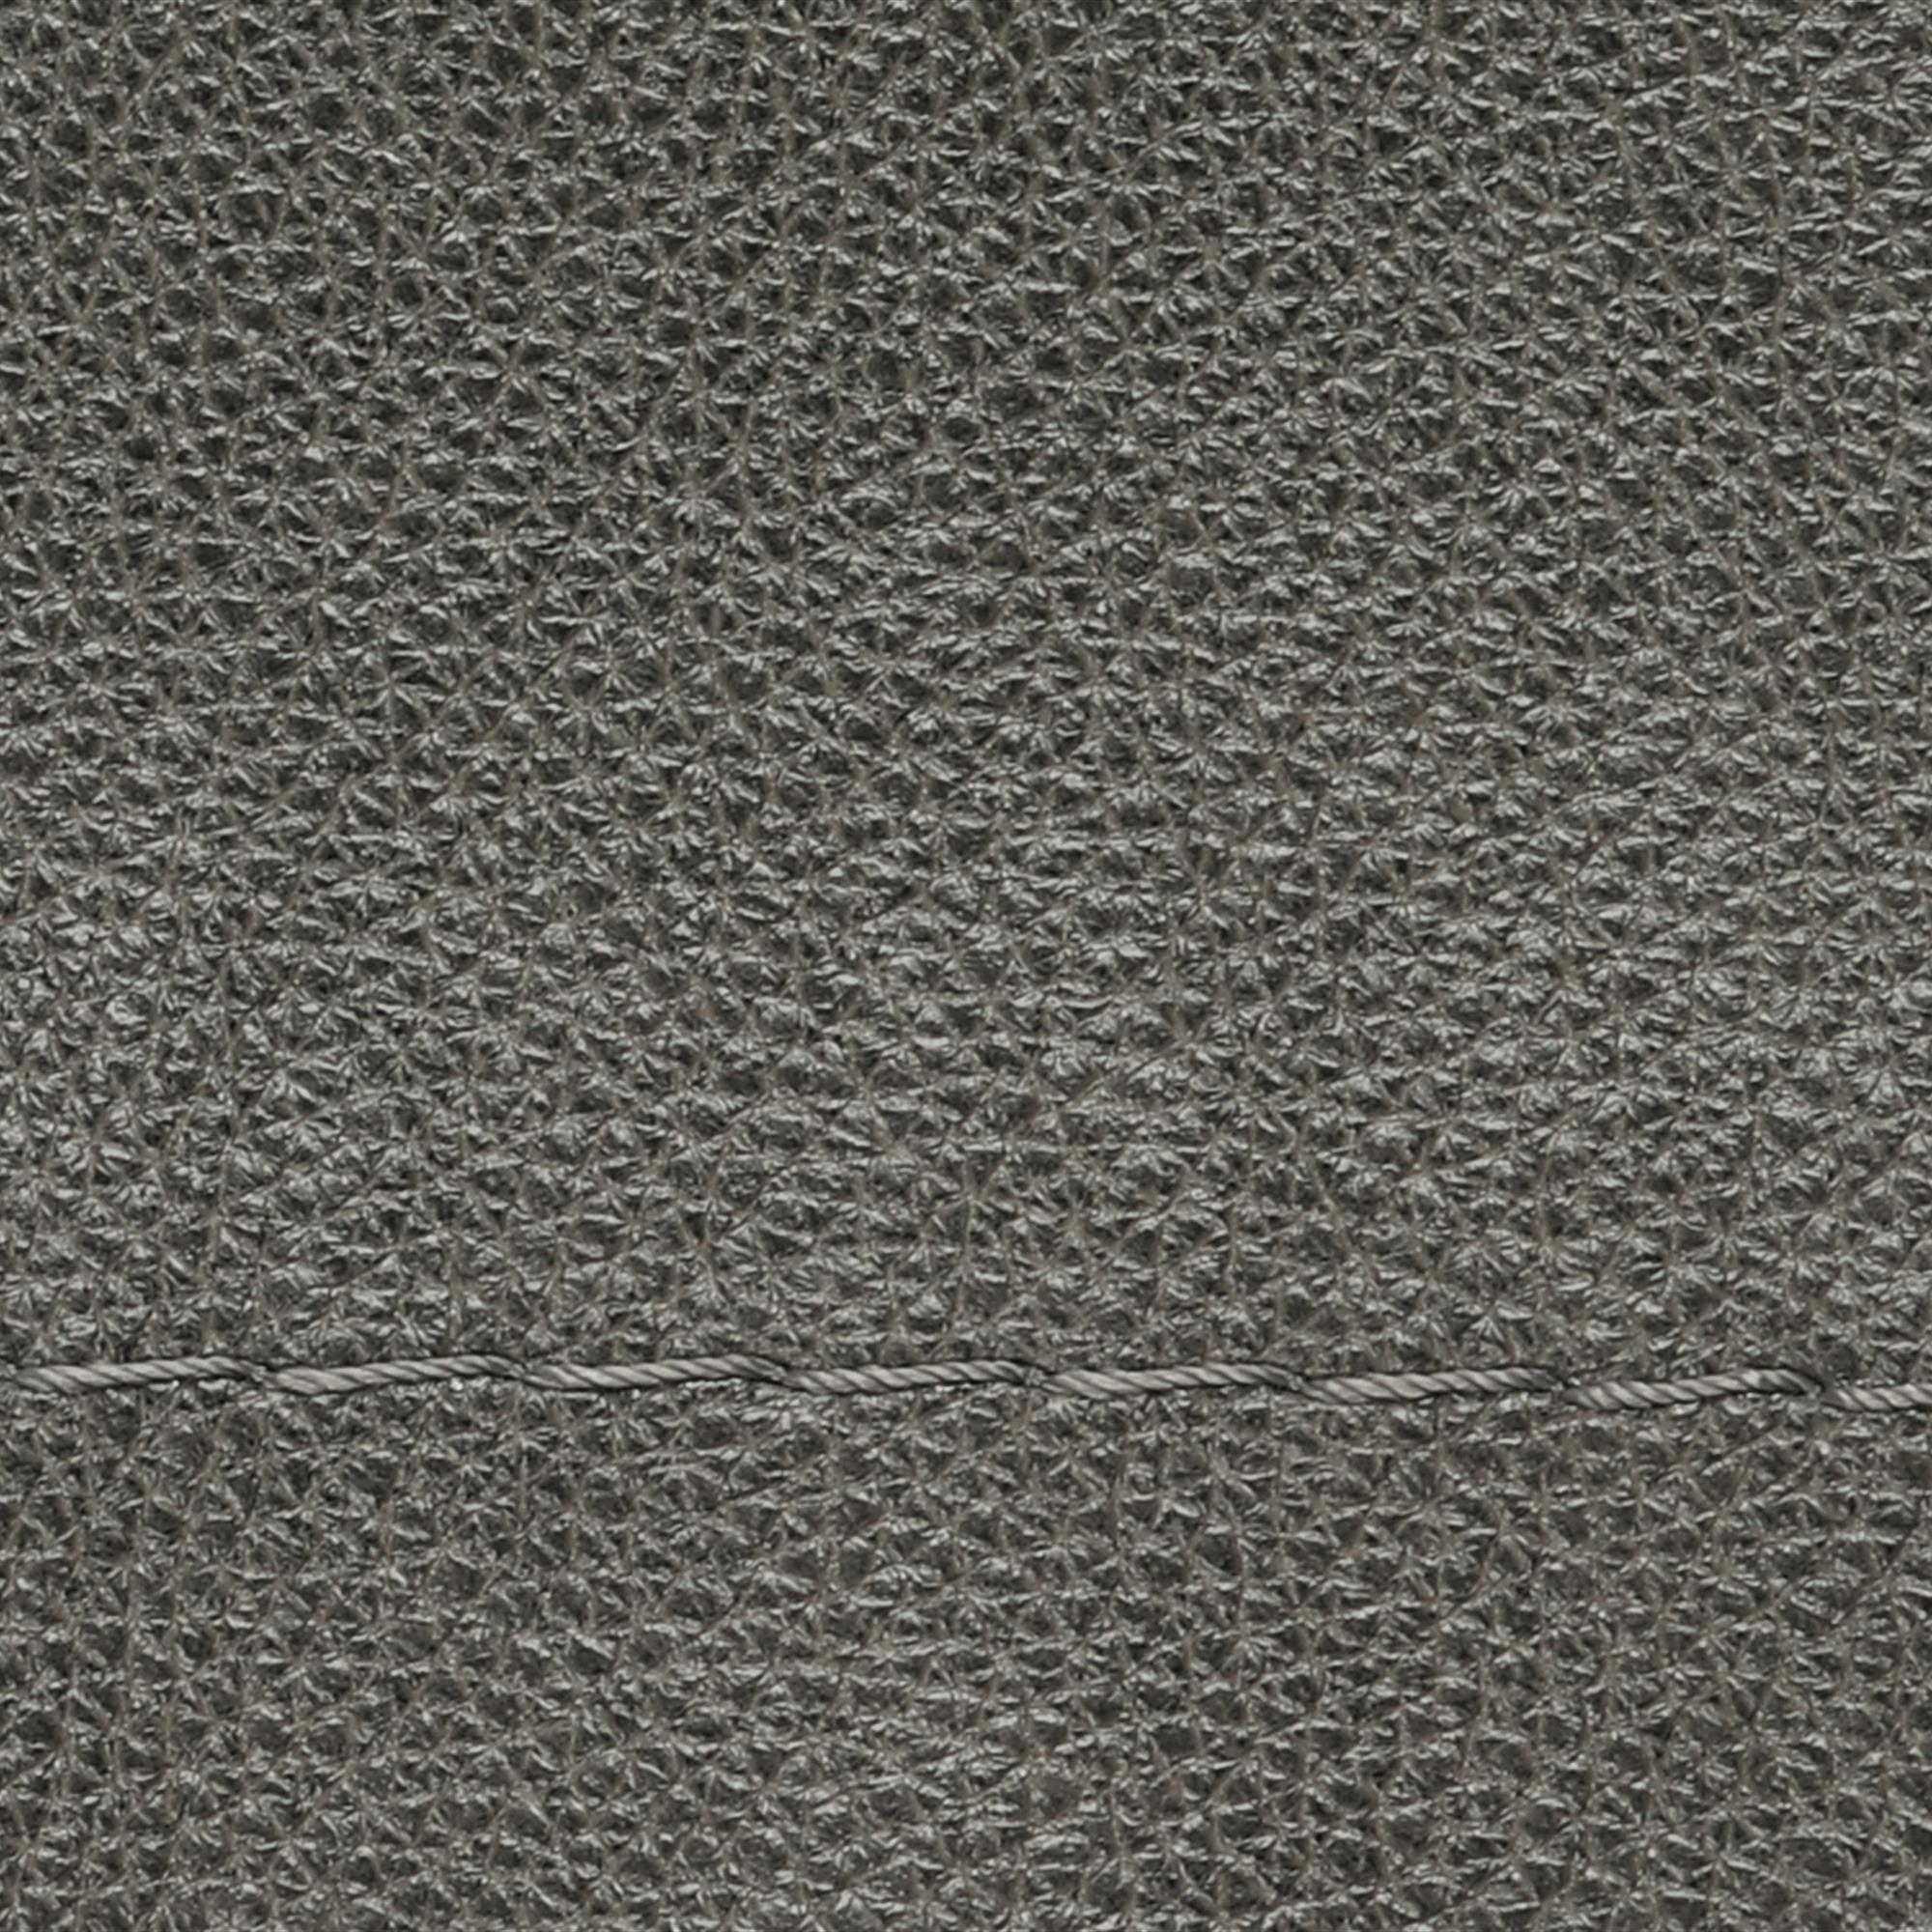 New Montefeltro 2943 Grey/Self Stitch